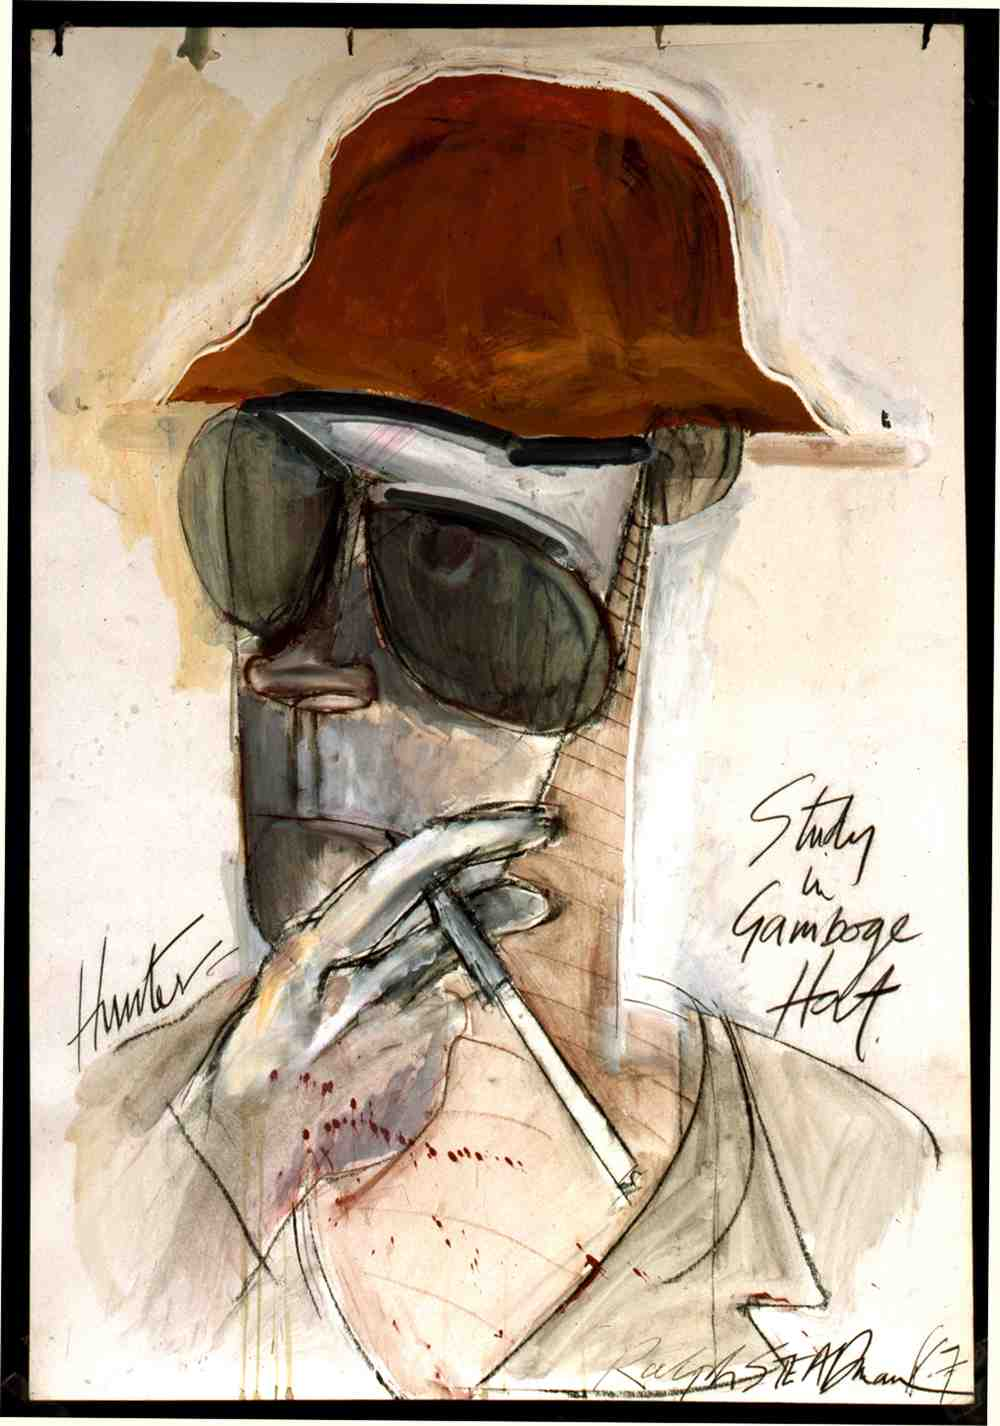 Hunter -- Study in a Gamboge Hat , by Ralph Steadman, courtesy of the artist. The 1987 portrait was drawn the year the author turned 50, and marked the only time Thompson 'sat' for a series of formal portraits by the artist.